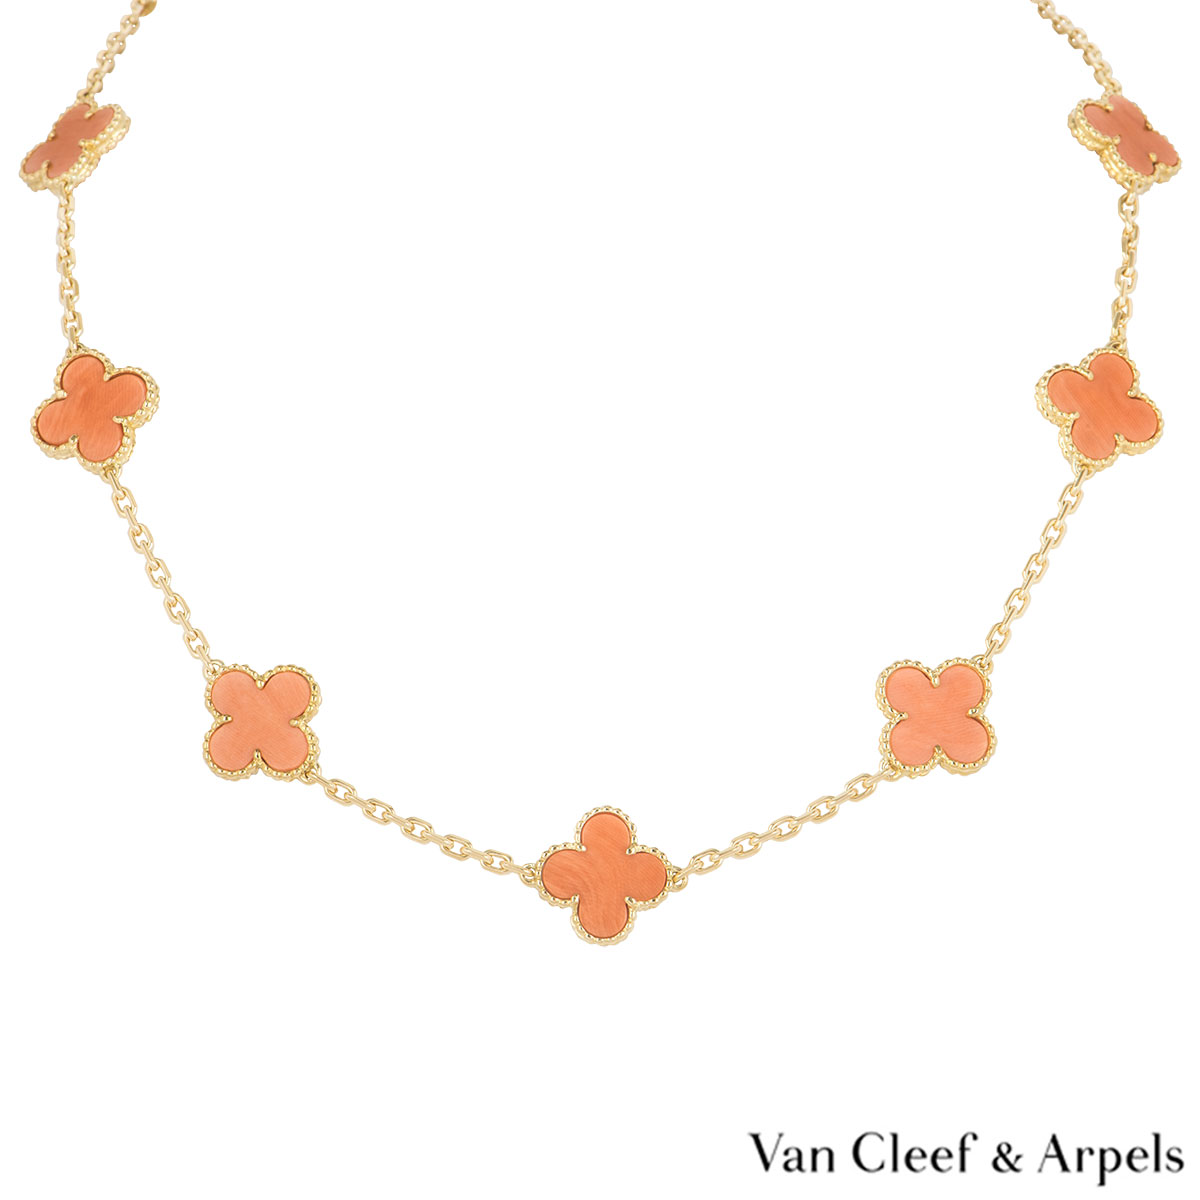 Van Cleef & Arpels Yellow Gold Coral Alhambra Necklace